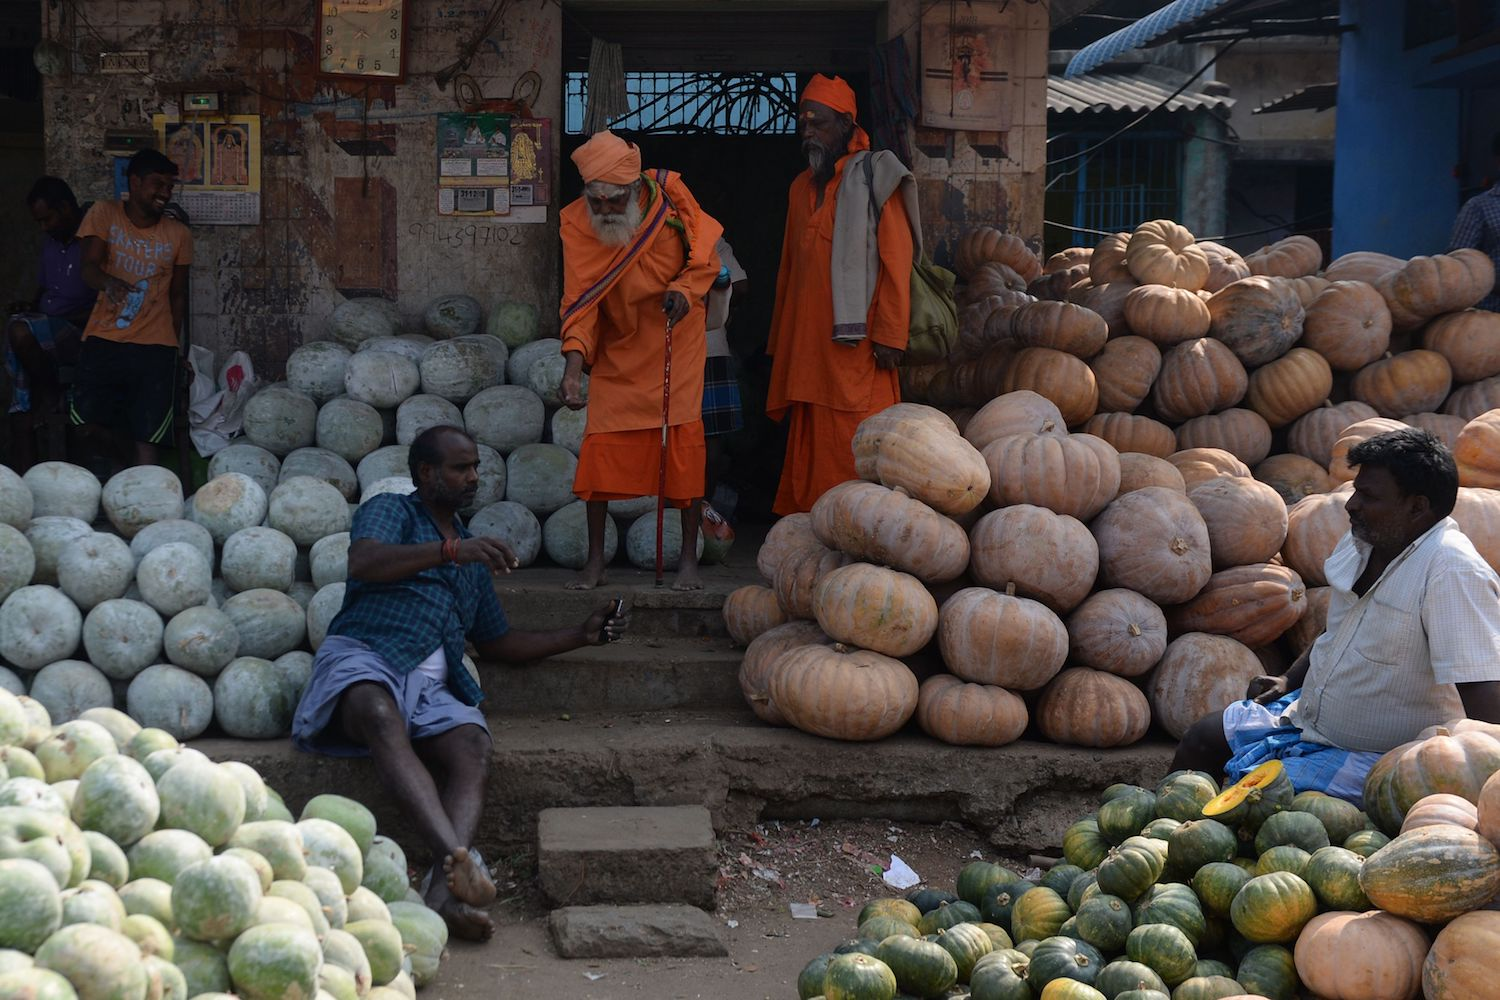 TOPSHOT - Indian pumpkin vendors wait for customers at a wholesale market in Chennai on January 31, 2018. The Indian government is set to focus on the agricultural sector in its annual budget that is released on February 1. / AFP PHOTO / ARUN SANKAR        (Photo credit should read ARUN SANKAR/AFP/Getty Images)